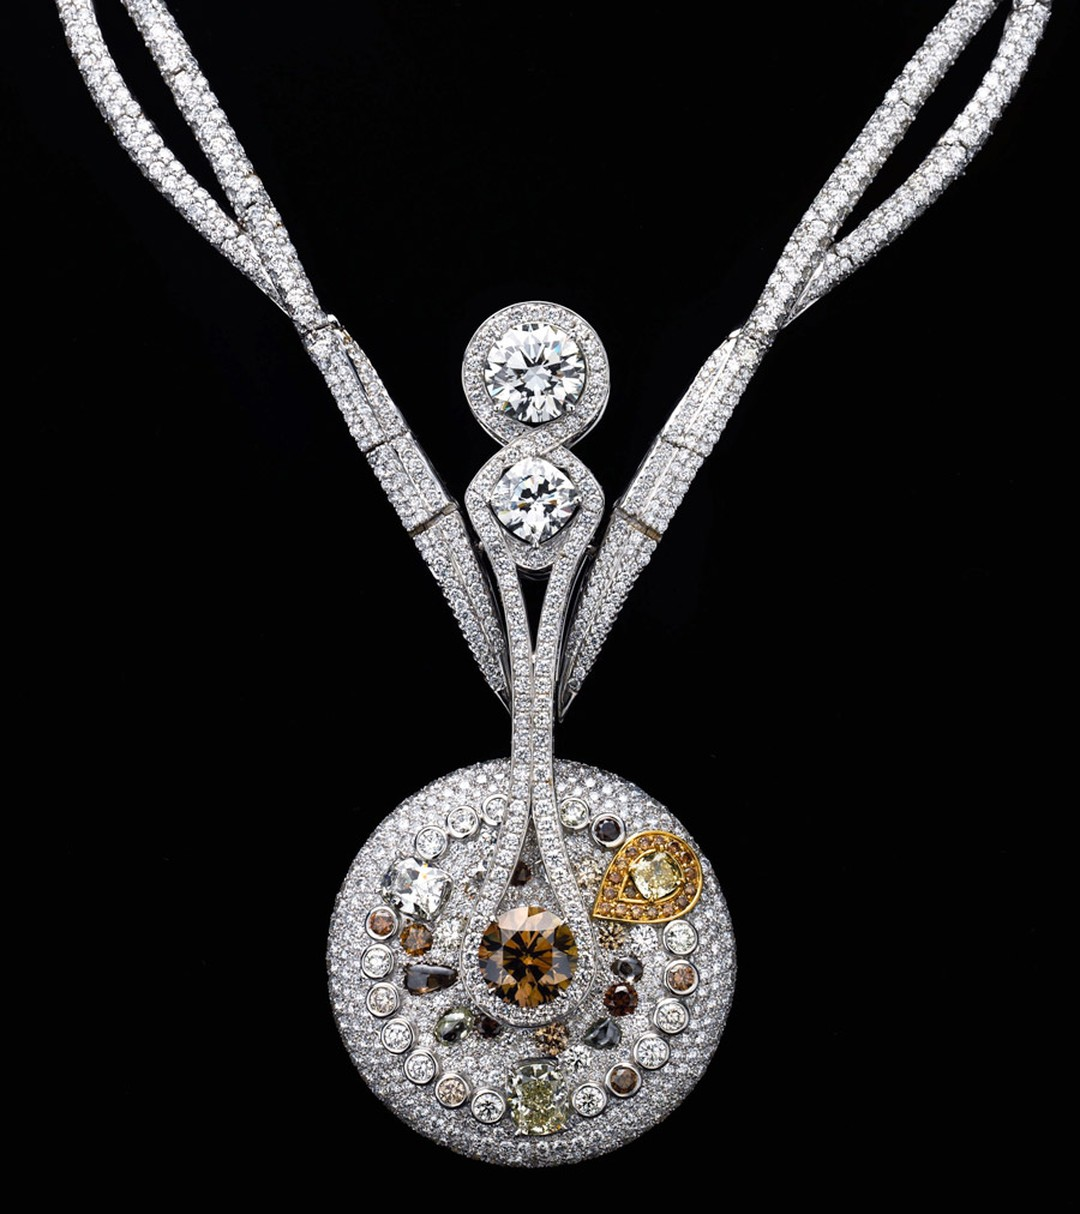 Rio-Tinto-Bunder-Diamonds_Reena-Ahluwalia-Necklace1